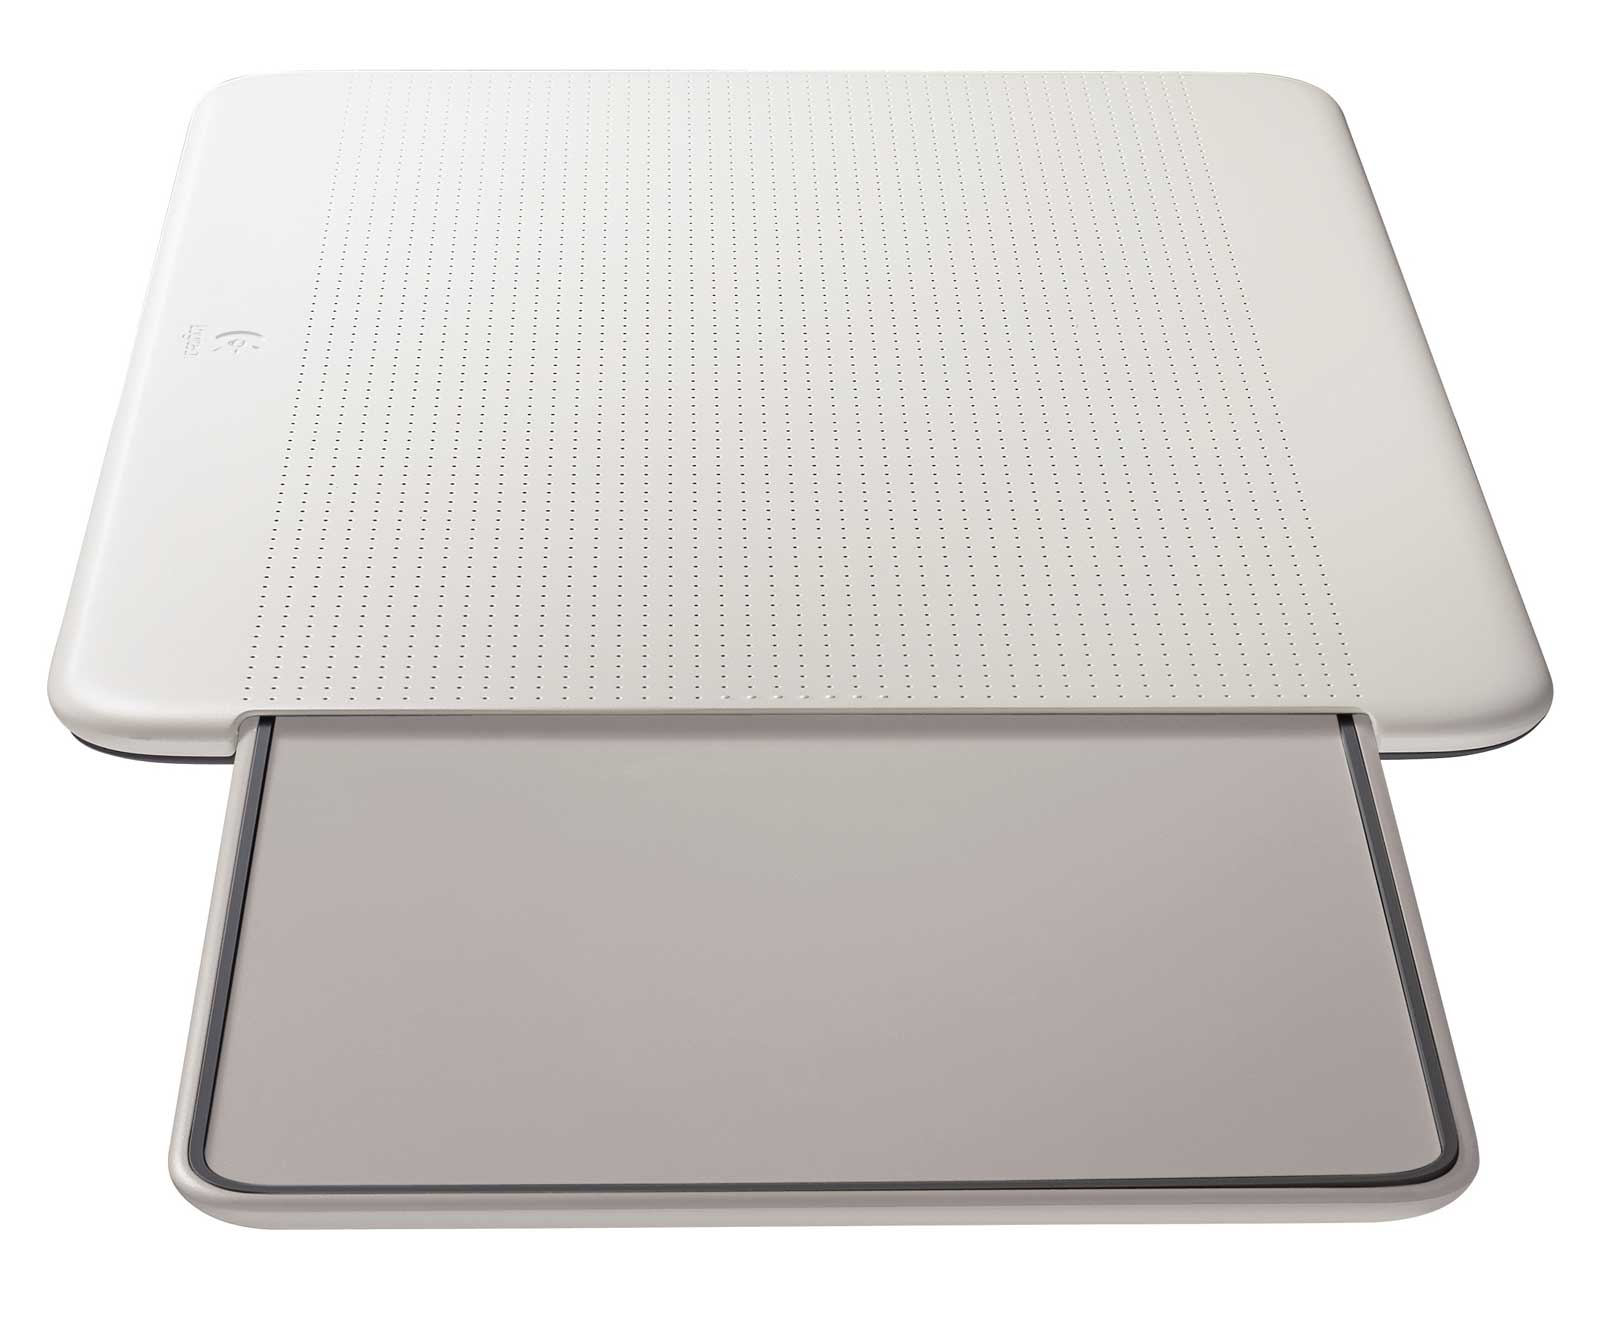 Logitech N315 Portable White Lapdesk with Cooling Pad